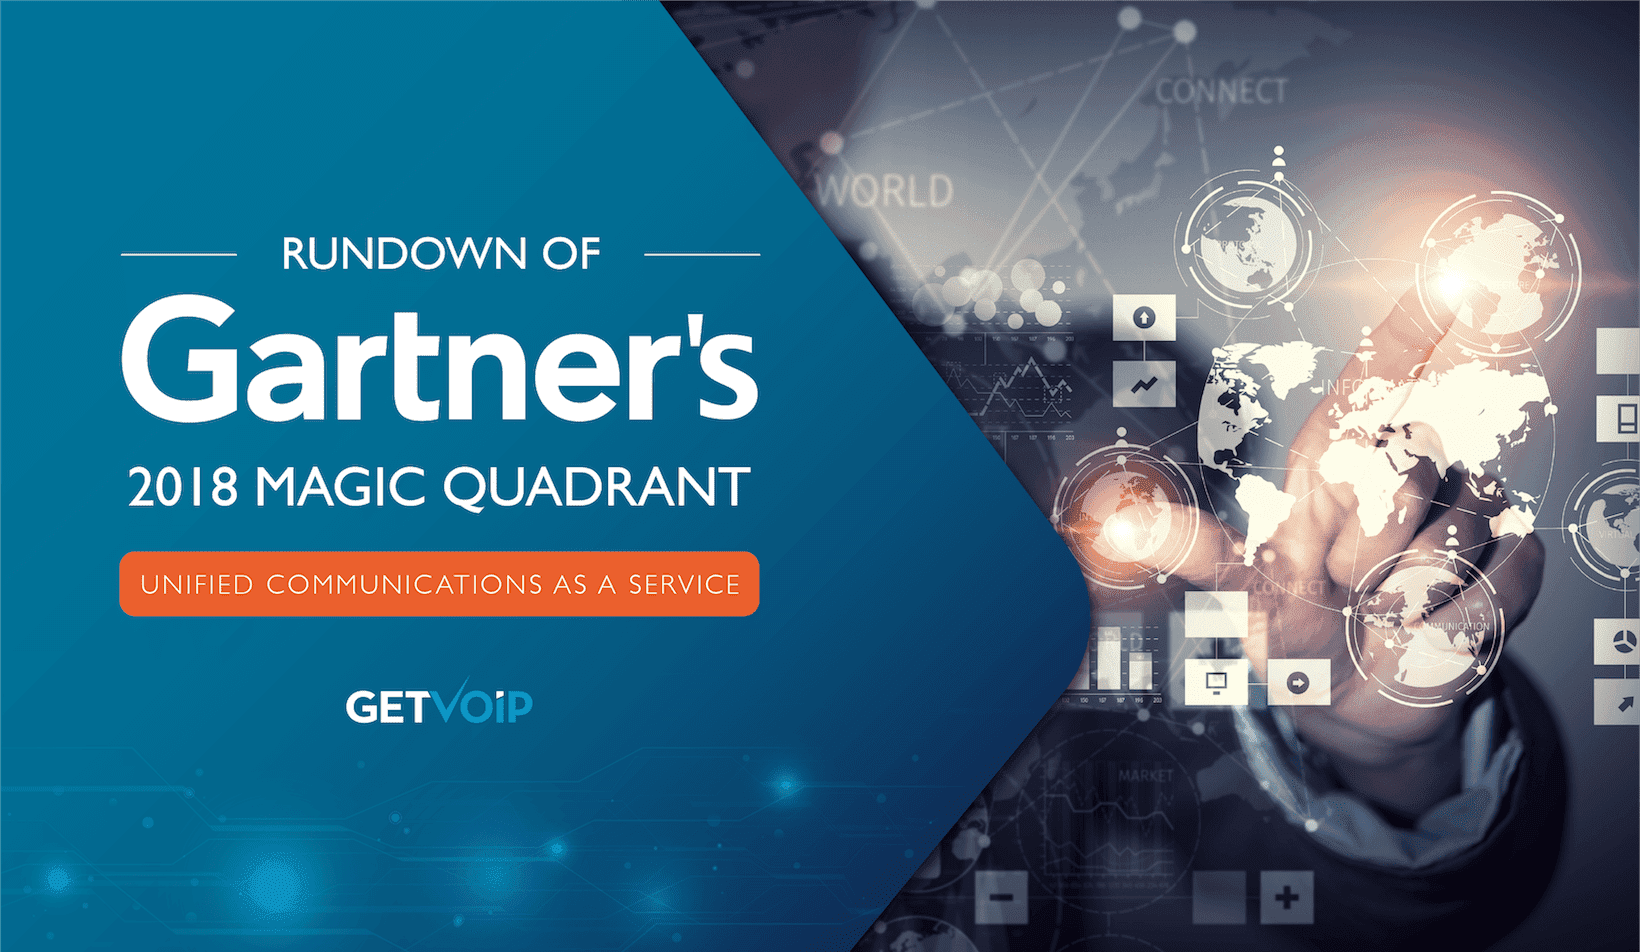 Our Rundown of Gartner's 2018 UCaaS Magic Quadrant